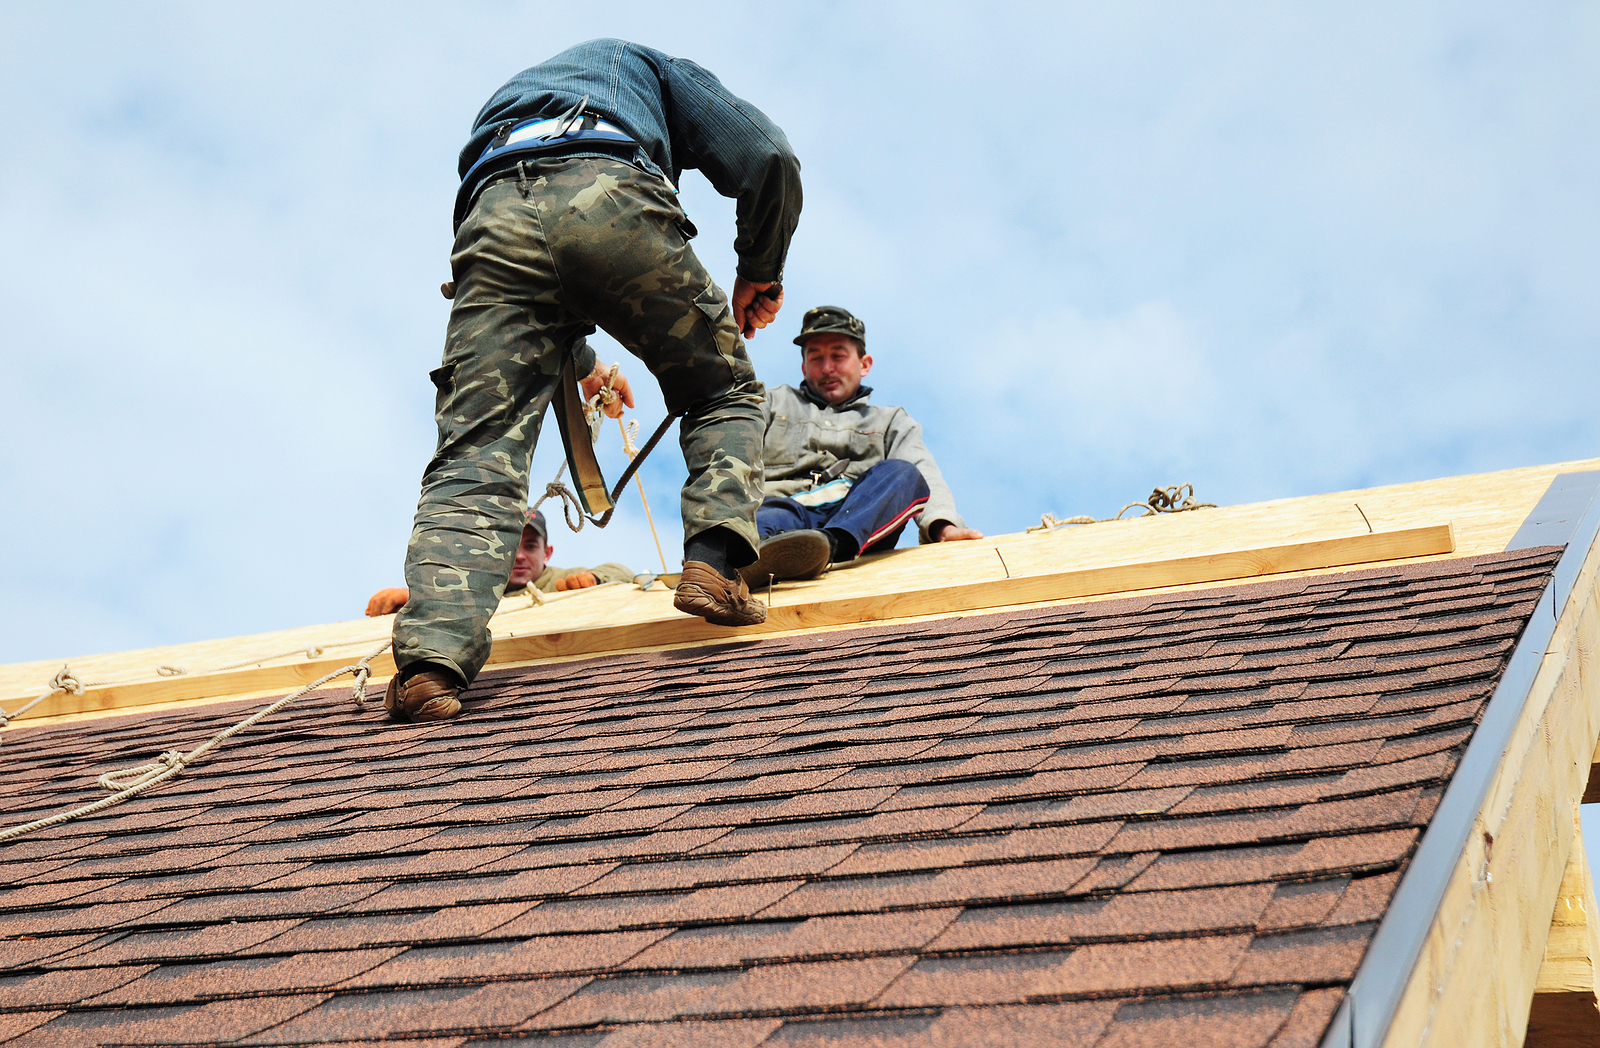 Roof Repair & Replacement Services McKinney, TX